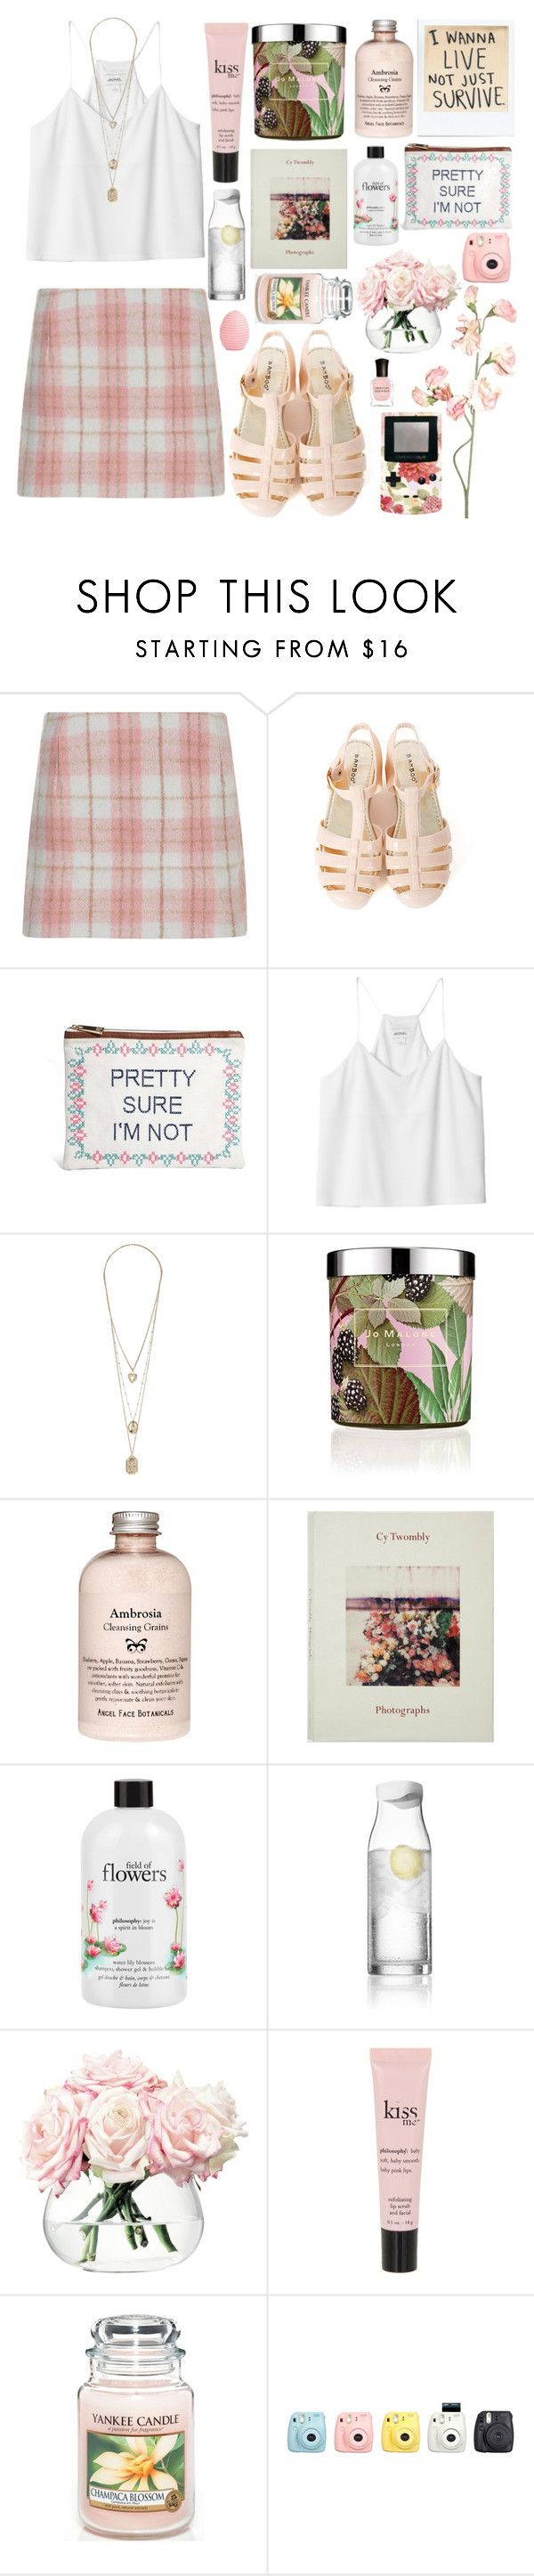 """""""Untitled #126"""" by sophieradley ❤ liked on Polyvore featuring Cameo Rose, ASOS, Monki, Jo Malone, philosophy, Menu, LSA International, Yankee Candle, Fuji and GreenGate"""